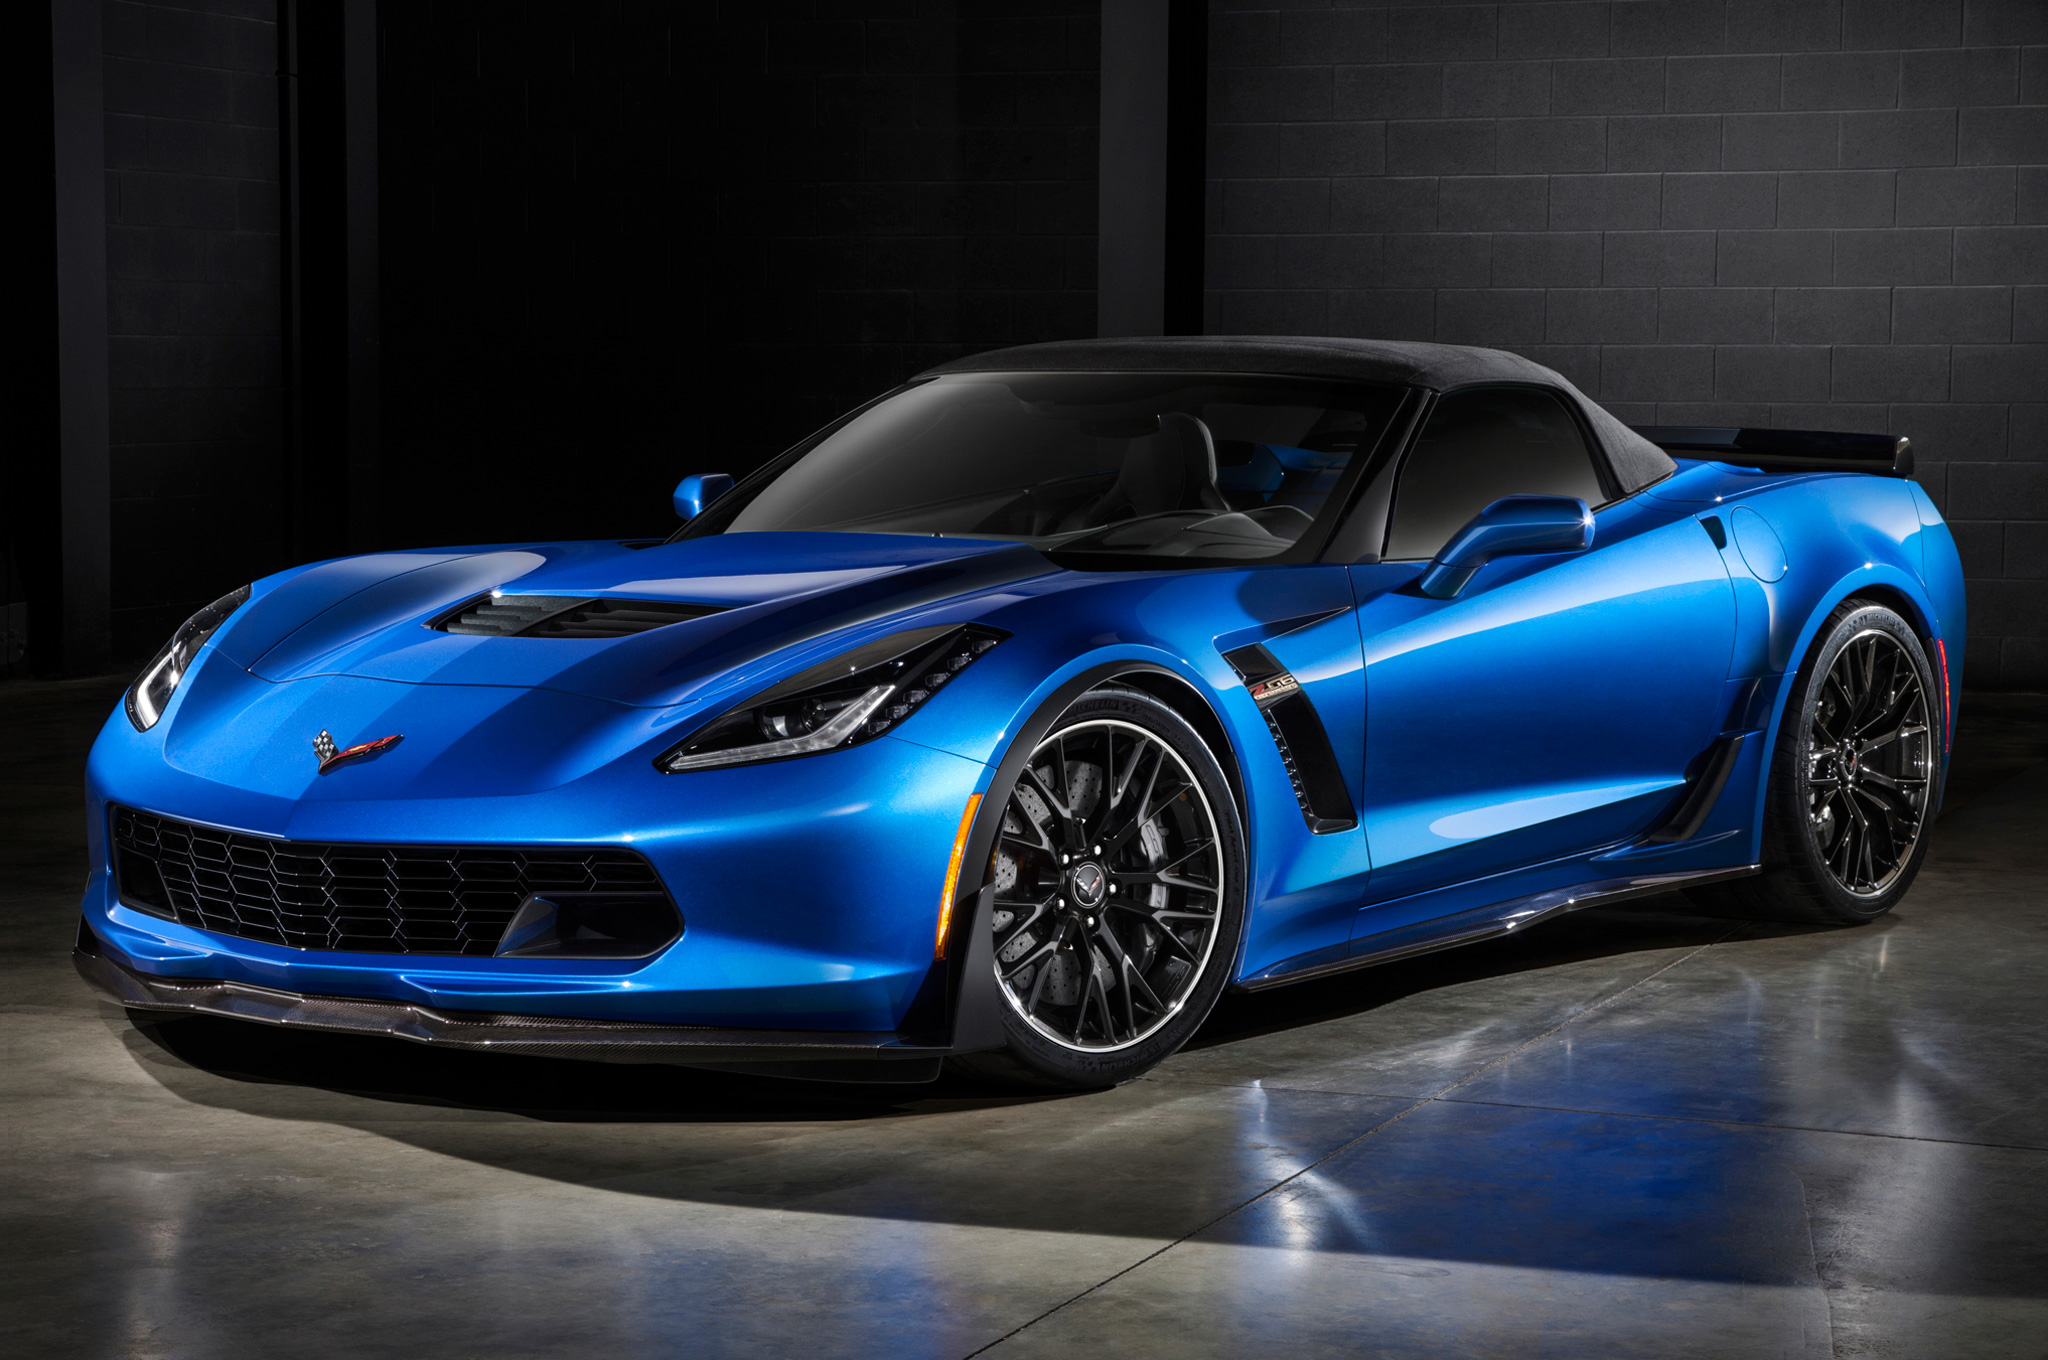 Automobilians Chevrolet To Introduce Its New Generation Car